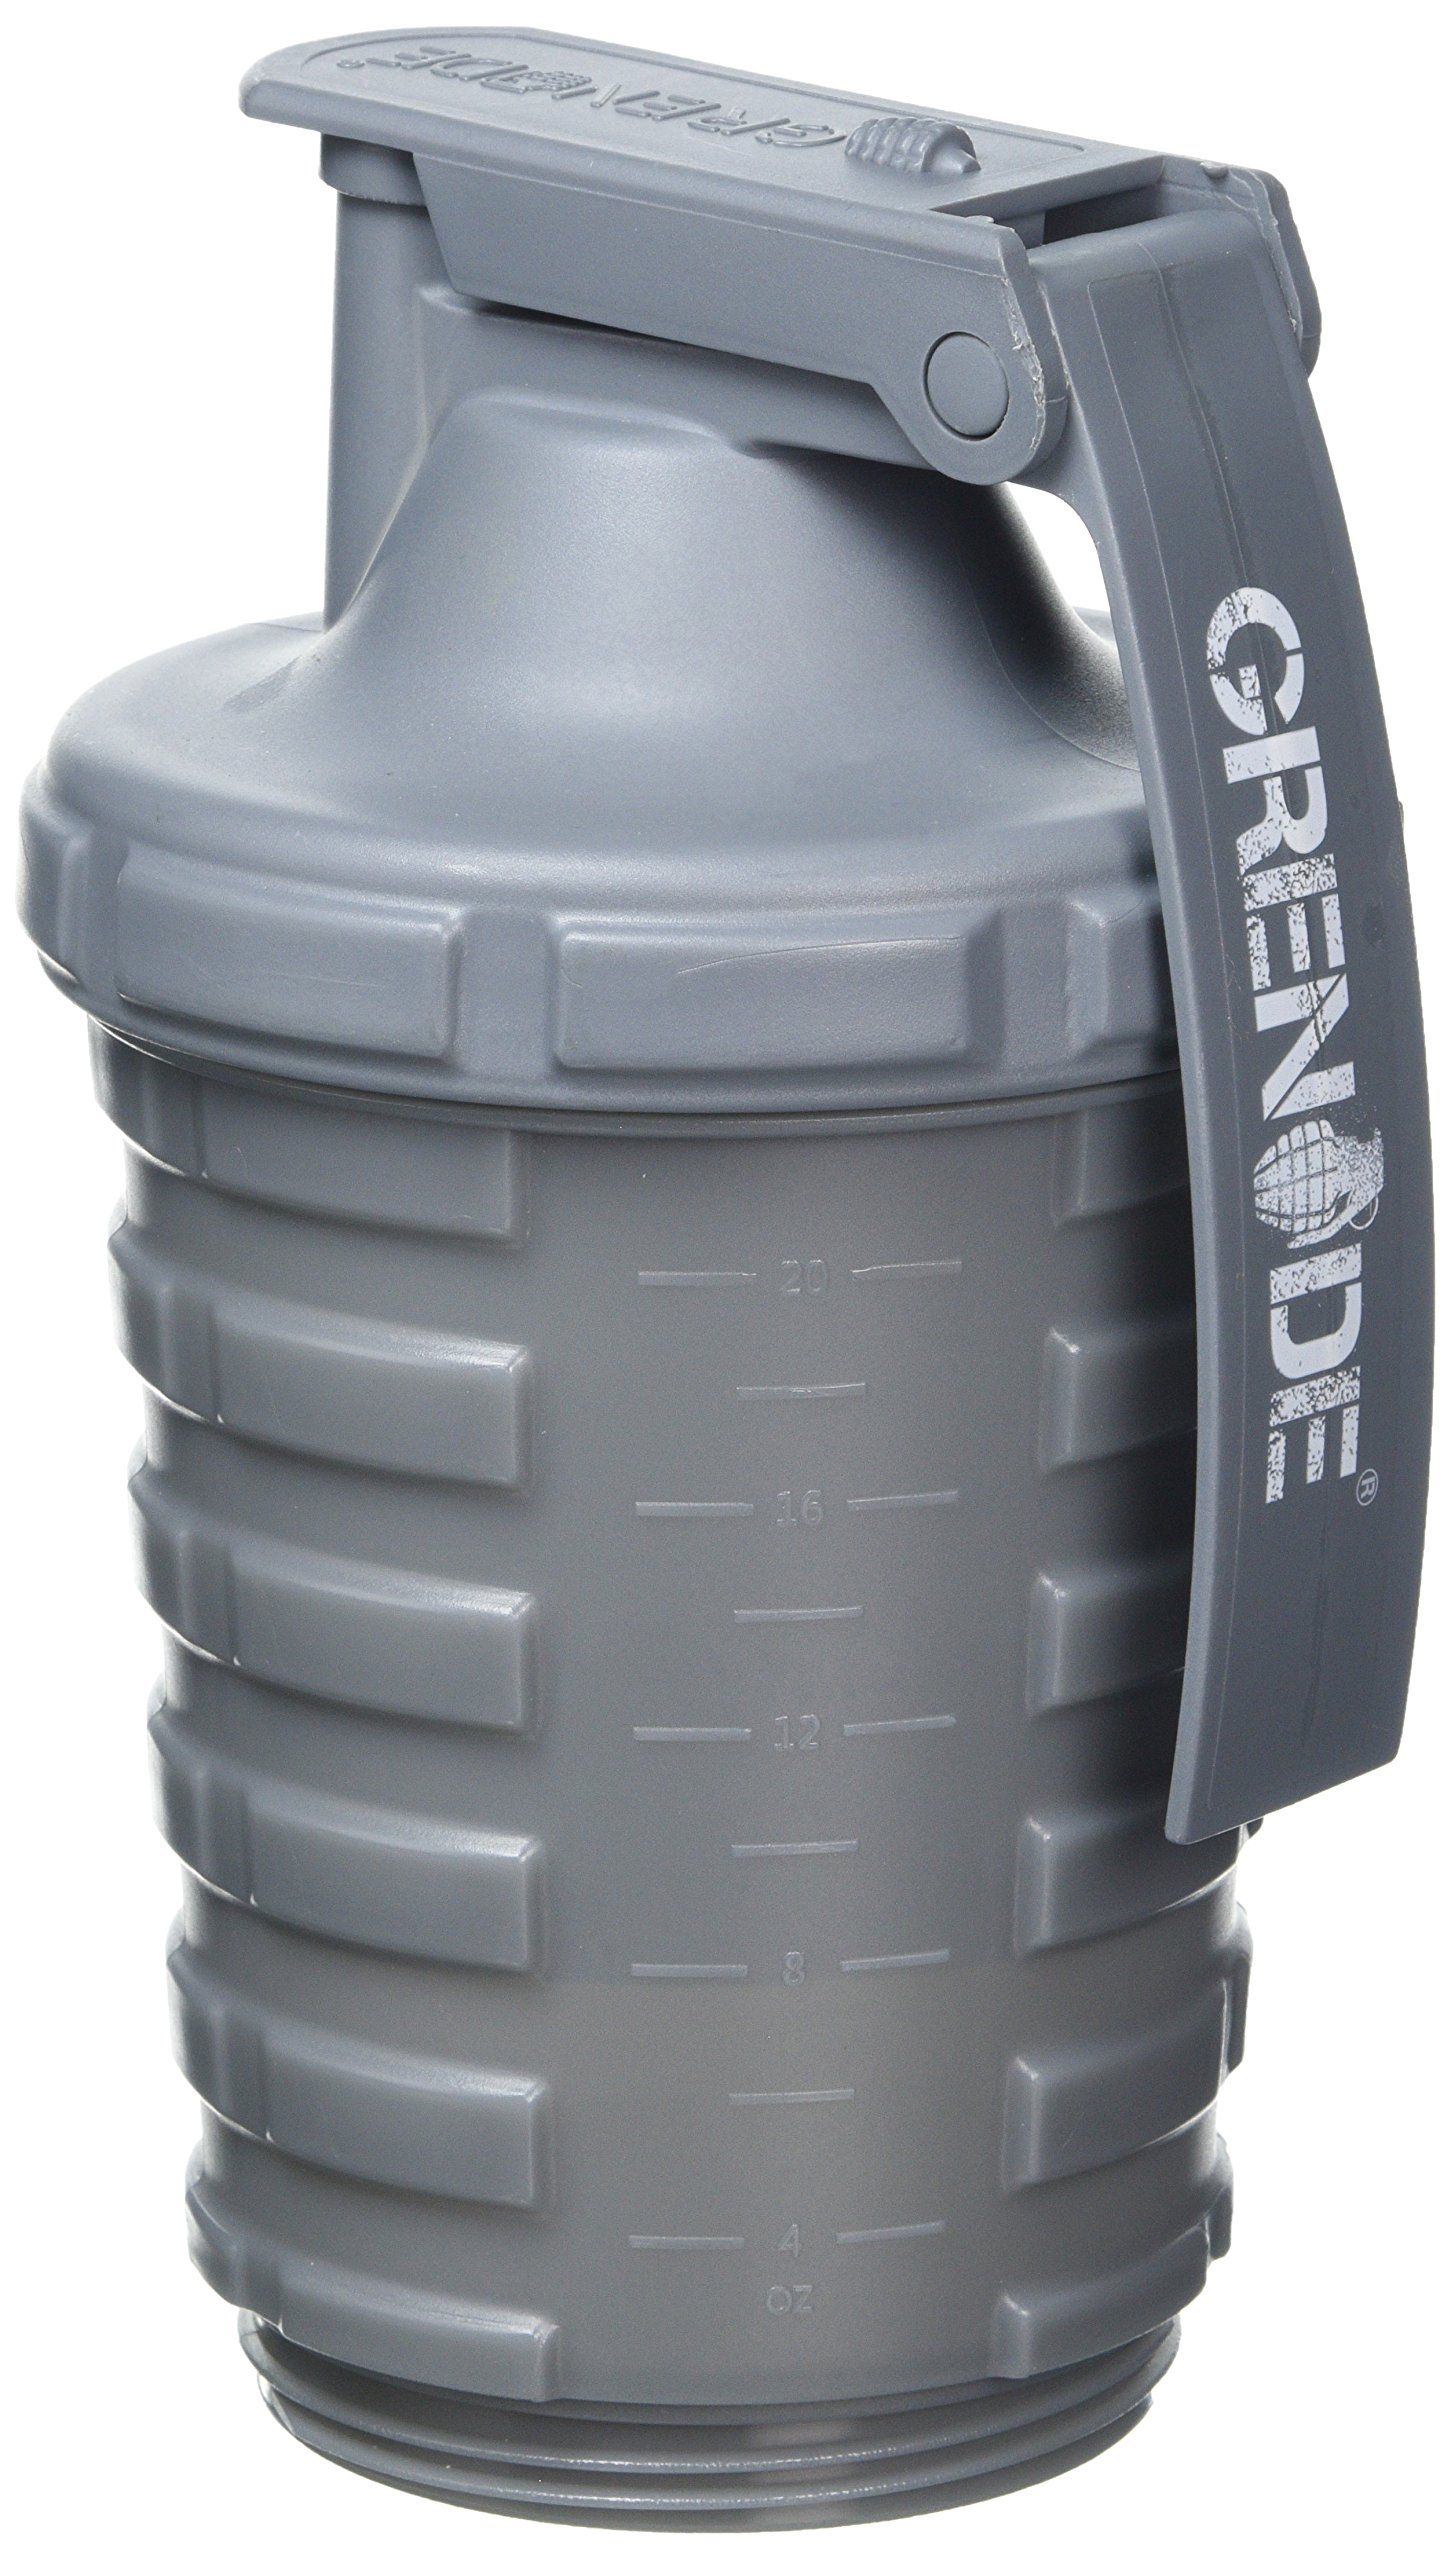 Amazon.com: Grenade Shaker Bottle | Protein Cup with